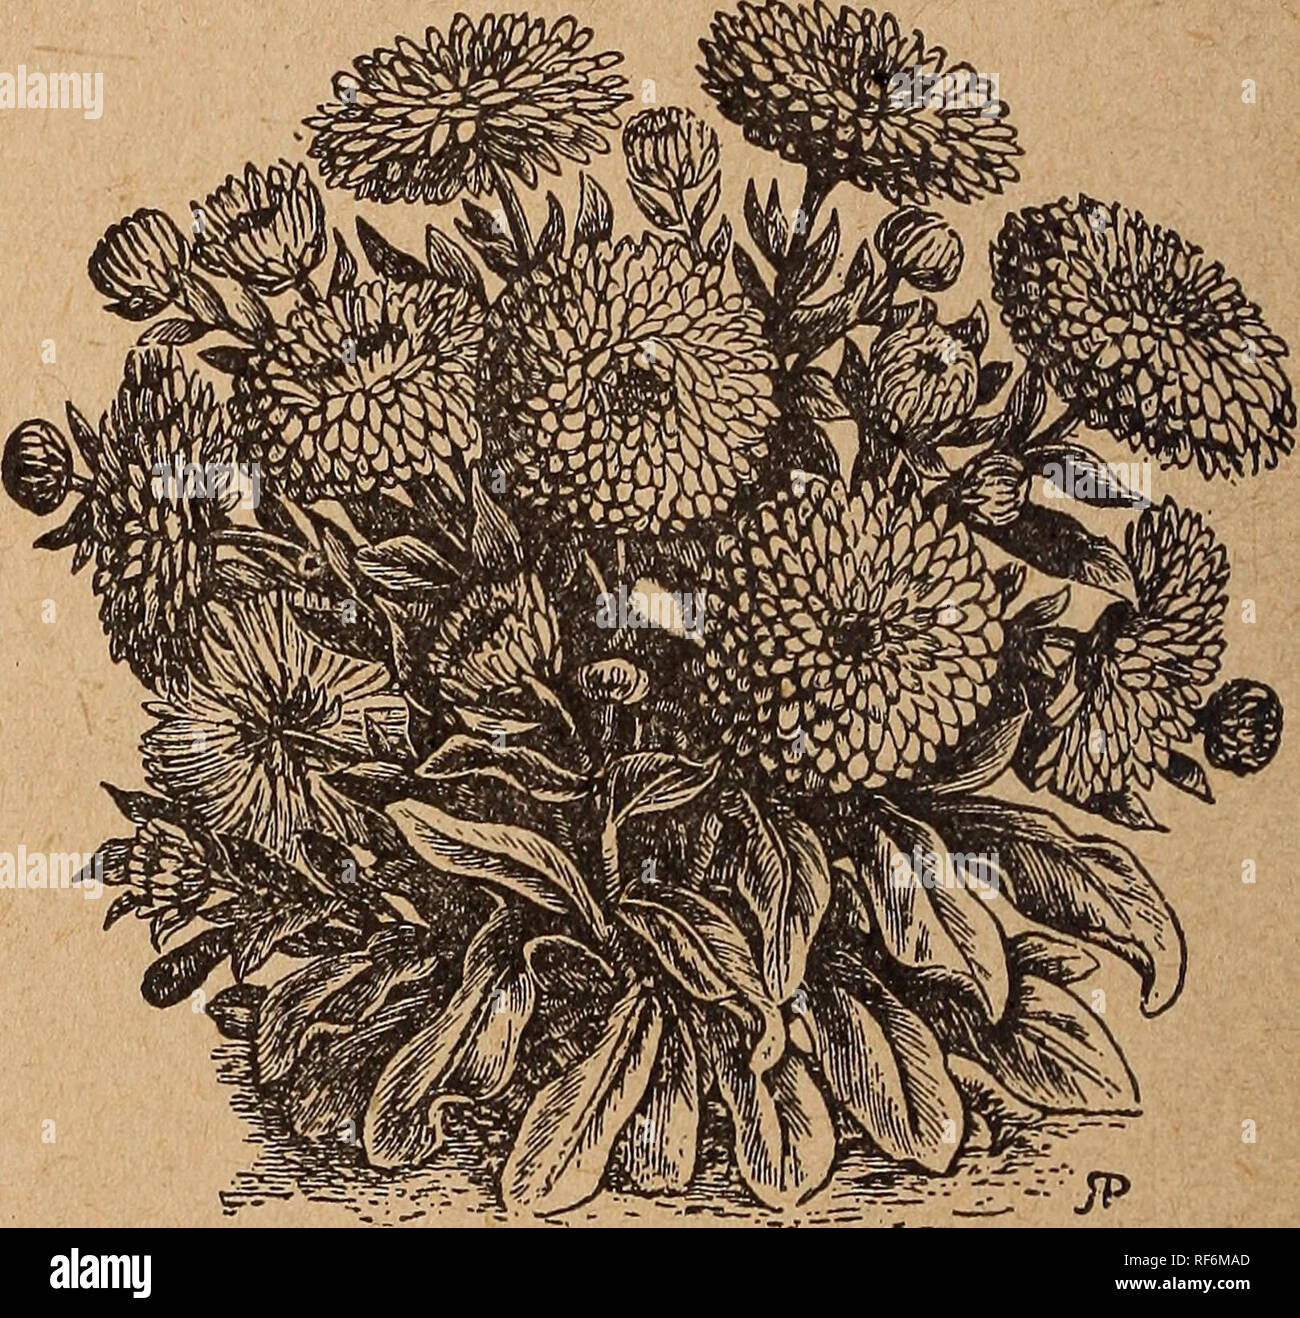 a576f509571c Nursery stock Pennsylvania Catalogs; Flowers Seeds Catalogs; Bulbs (Plants)  Catalogs. Large-flowered 6alendula. Mixed 4 pkts. 10 cts., 1 pkt. 3 cts.